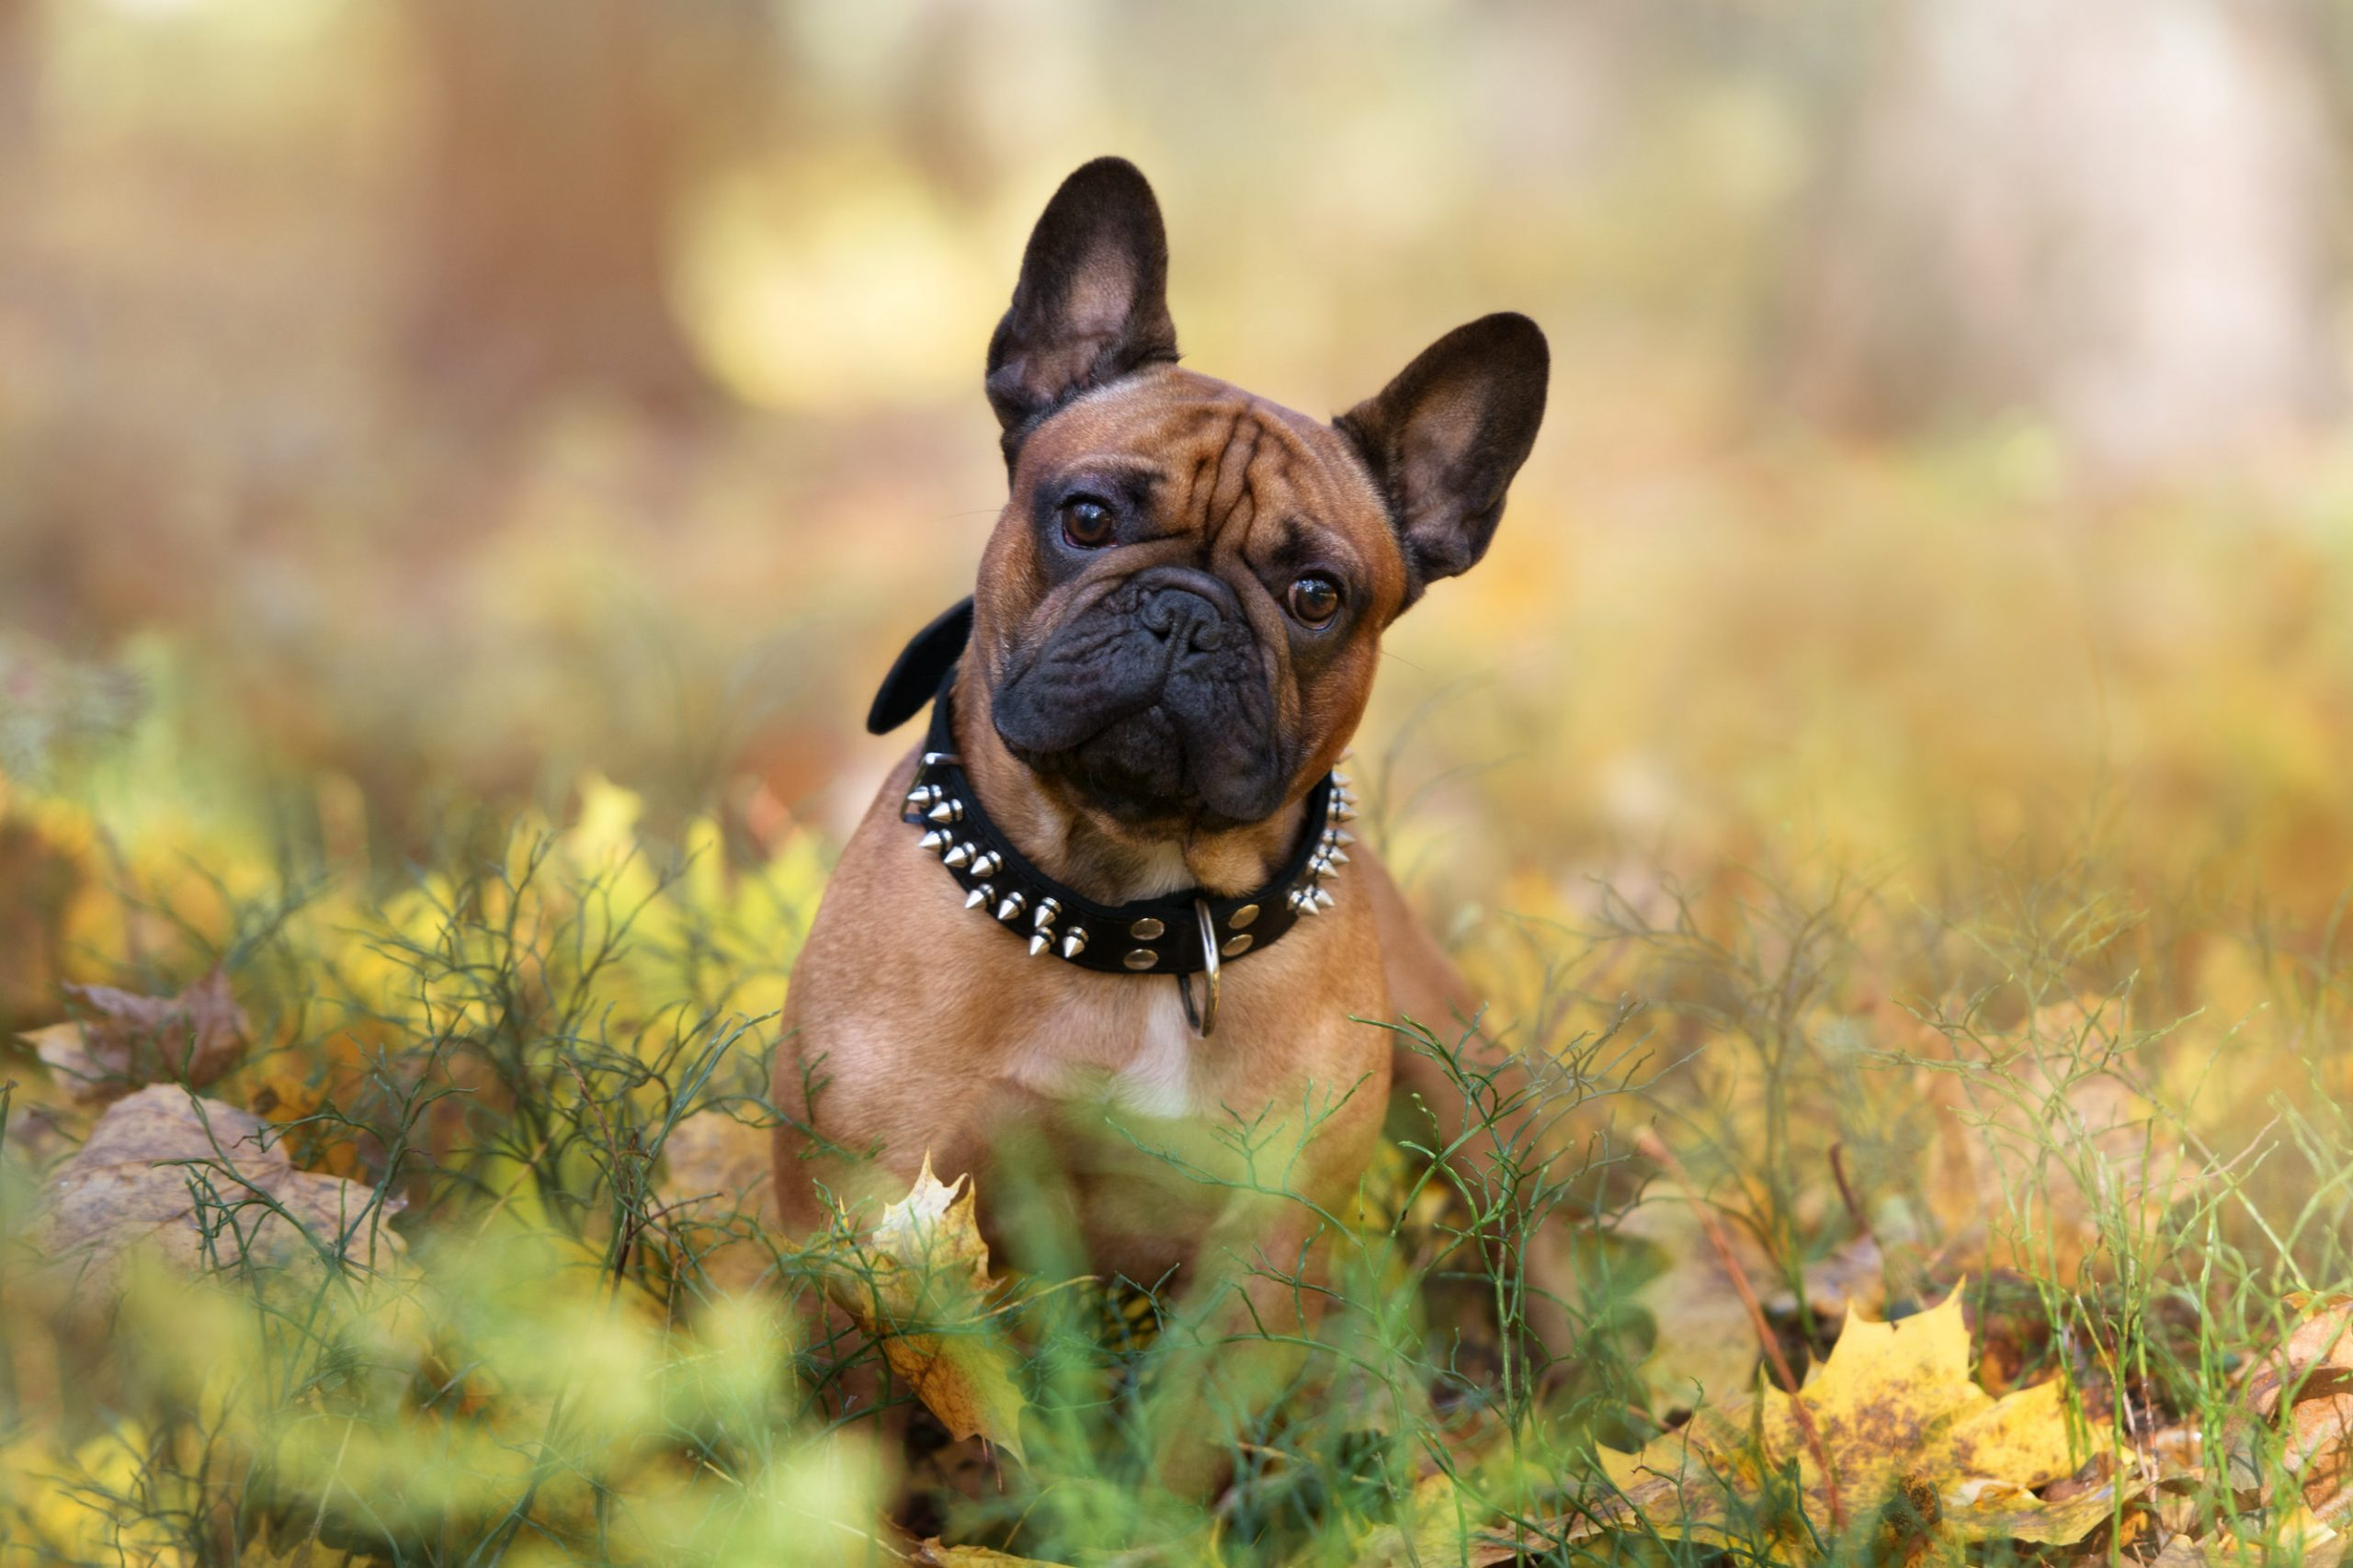 adorable french bulldog dog posing in an autumn forest